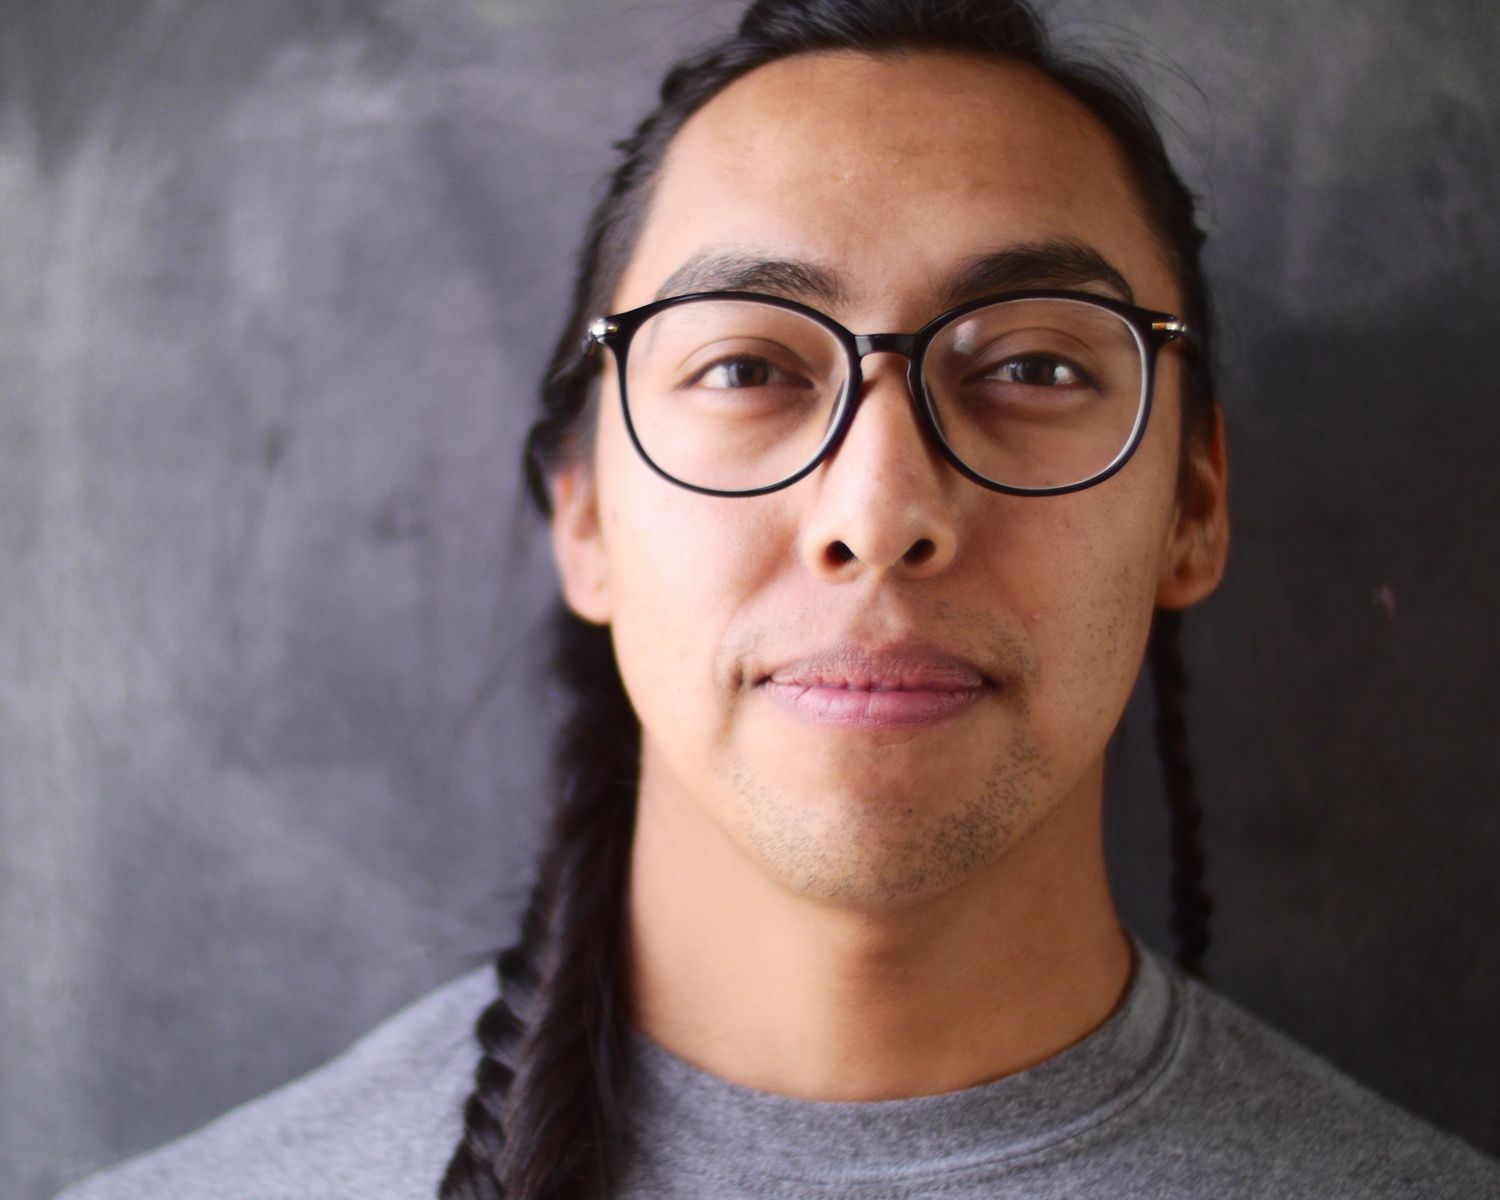 Daryl Lucero - Isleta PuebloDaryl is a land-based practitioner, who farms and teaches and likes to read and write. Daryl received his MA in Indigenous Governance from the University of Victoria in 2014, completing his thesis on